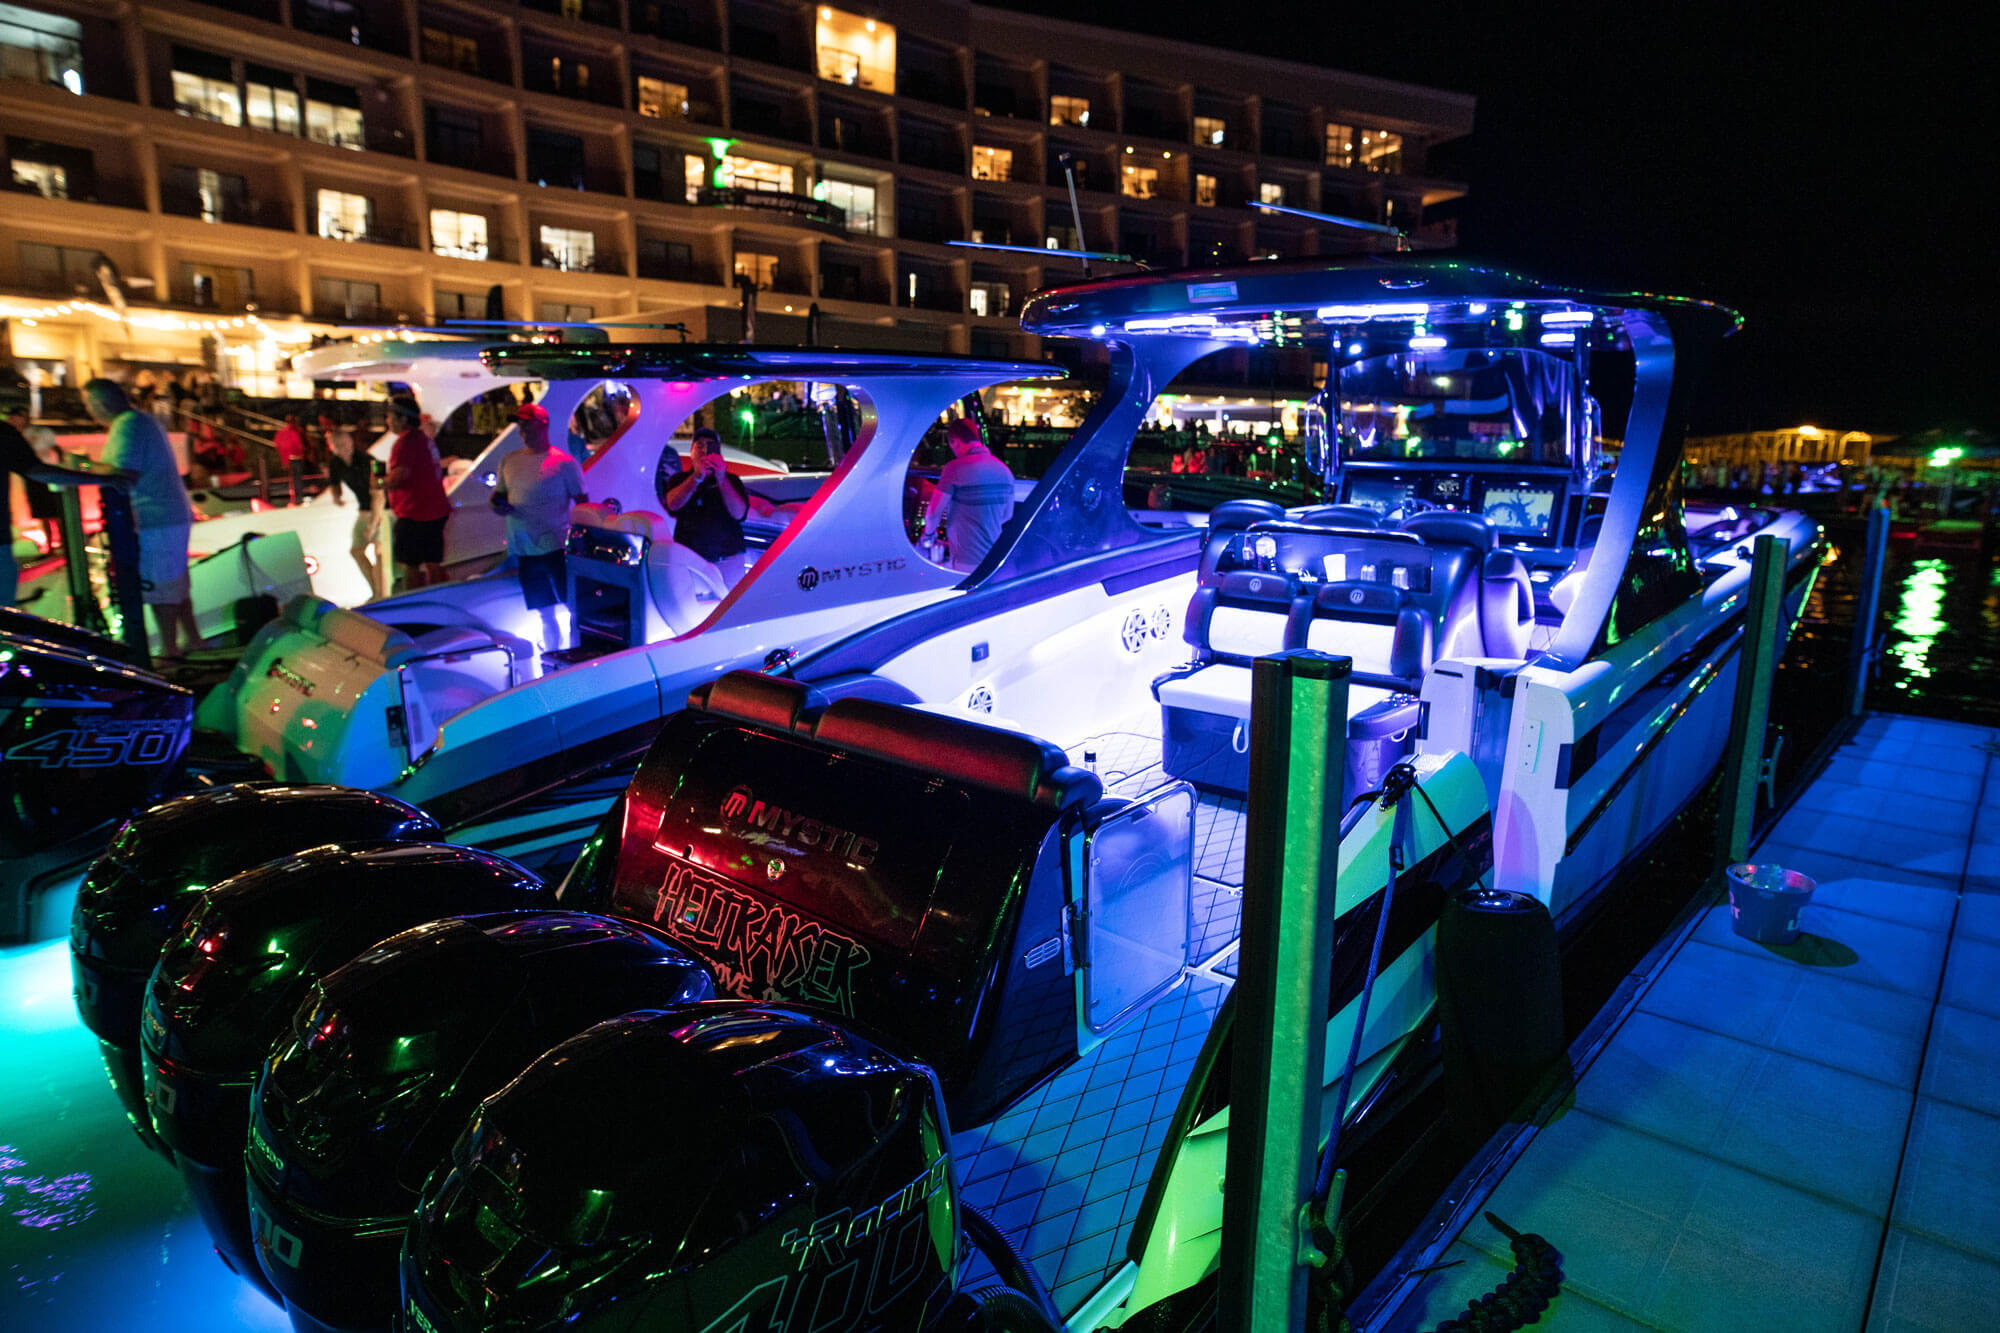 speed boat engines in marina at night